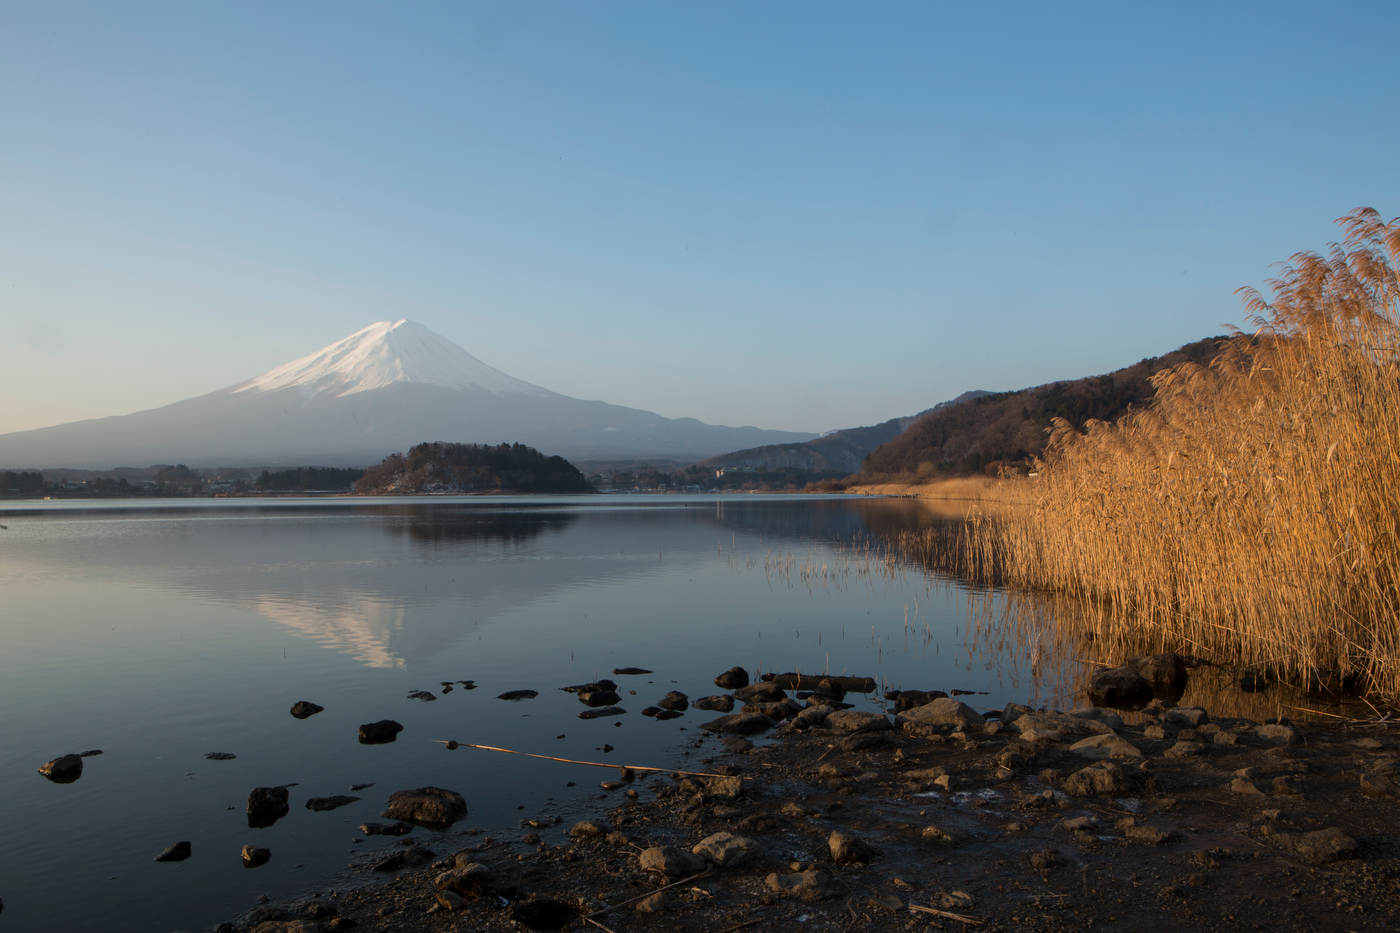 Mt. Fuji reflects in the waters of Lake Kawaguchiko.